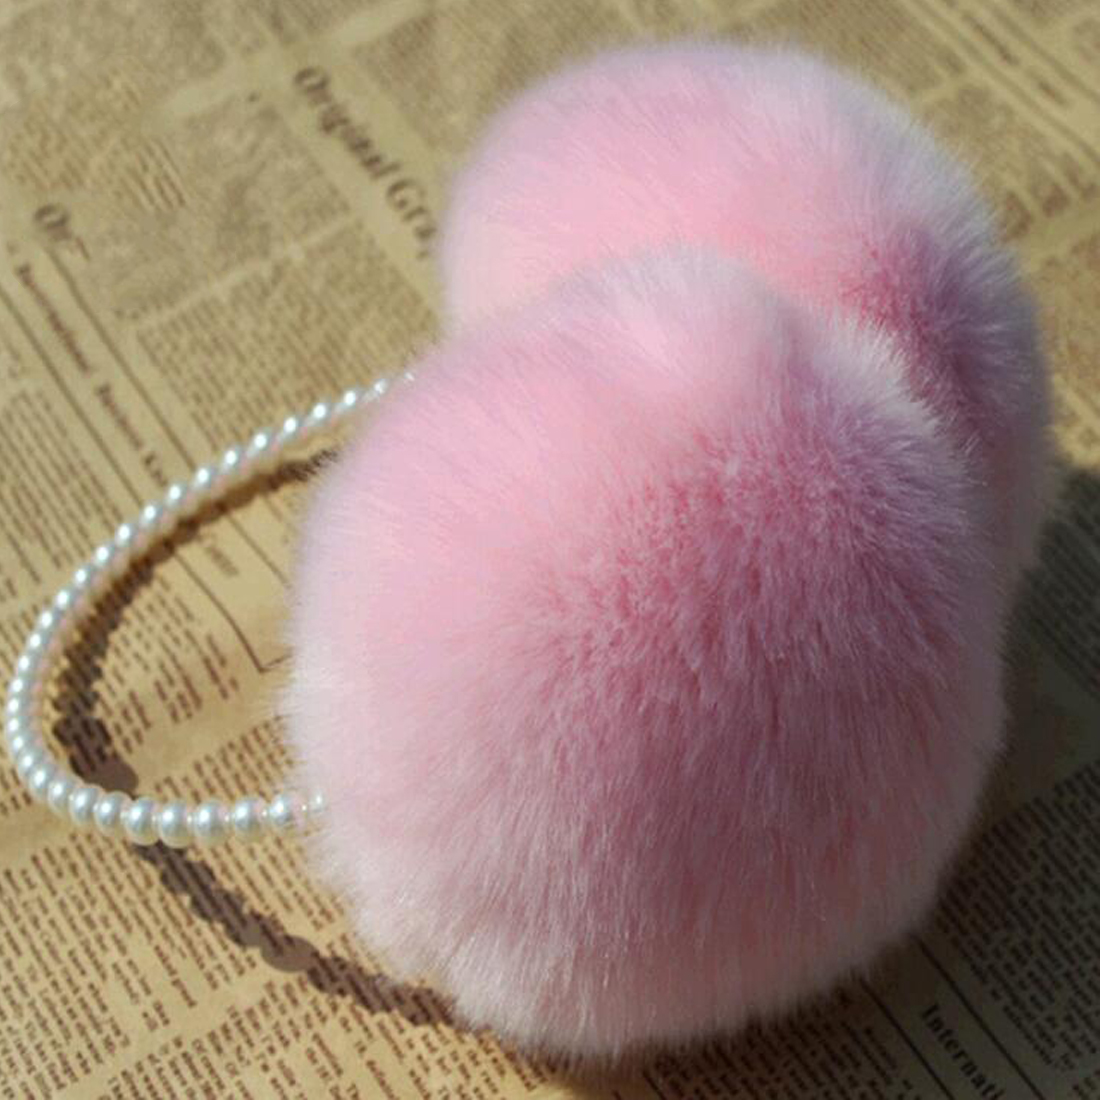 Rabbit Fur Earmuffs Ear Muffs Ear Warmers Earmuffs Earflap Winter Outdoor Women Warmer Headband Christmas Gifts